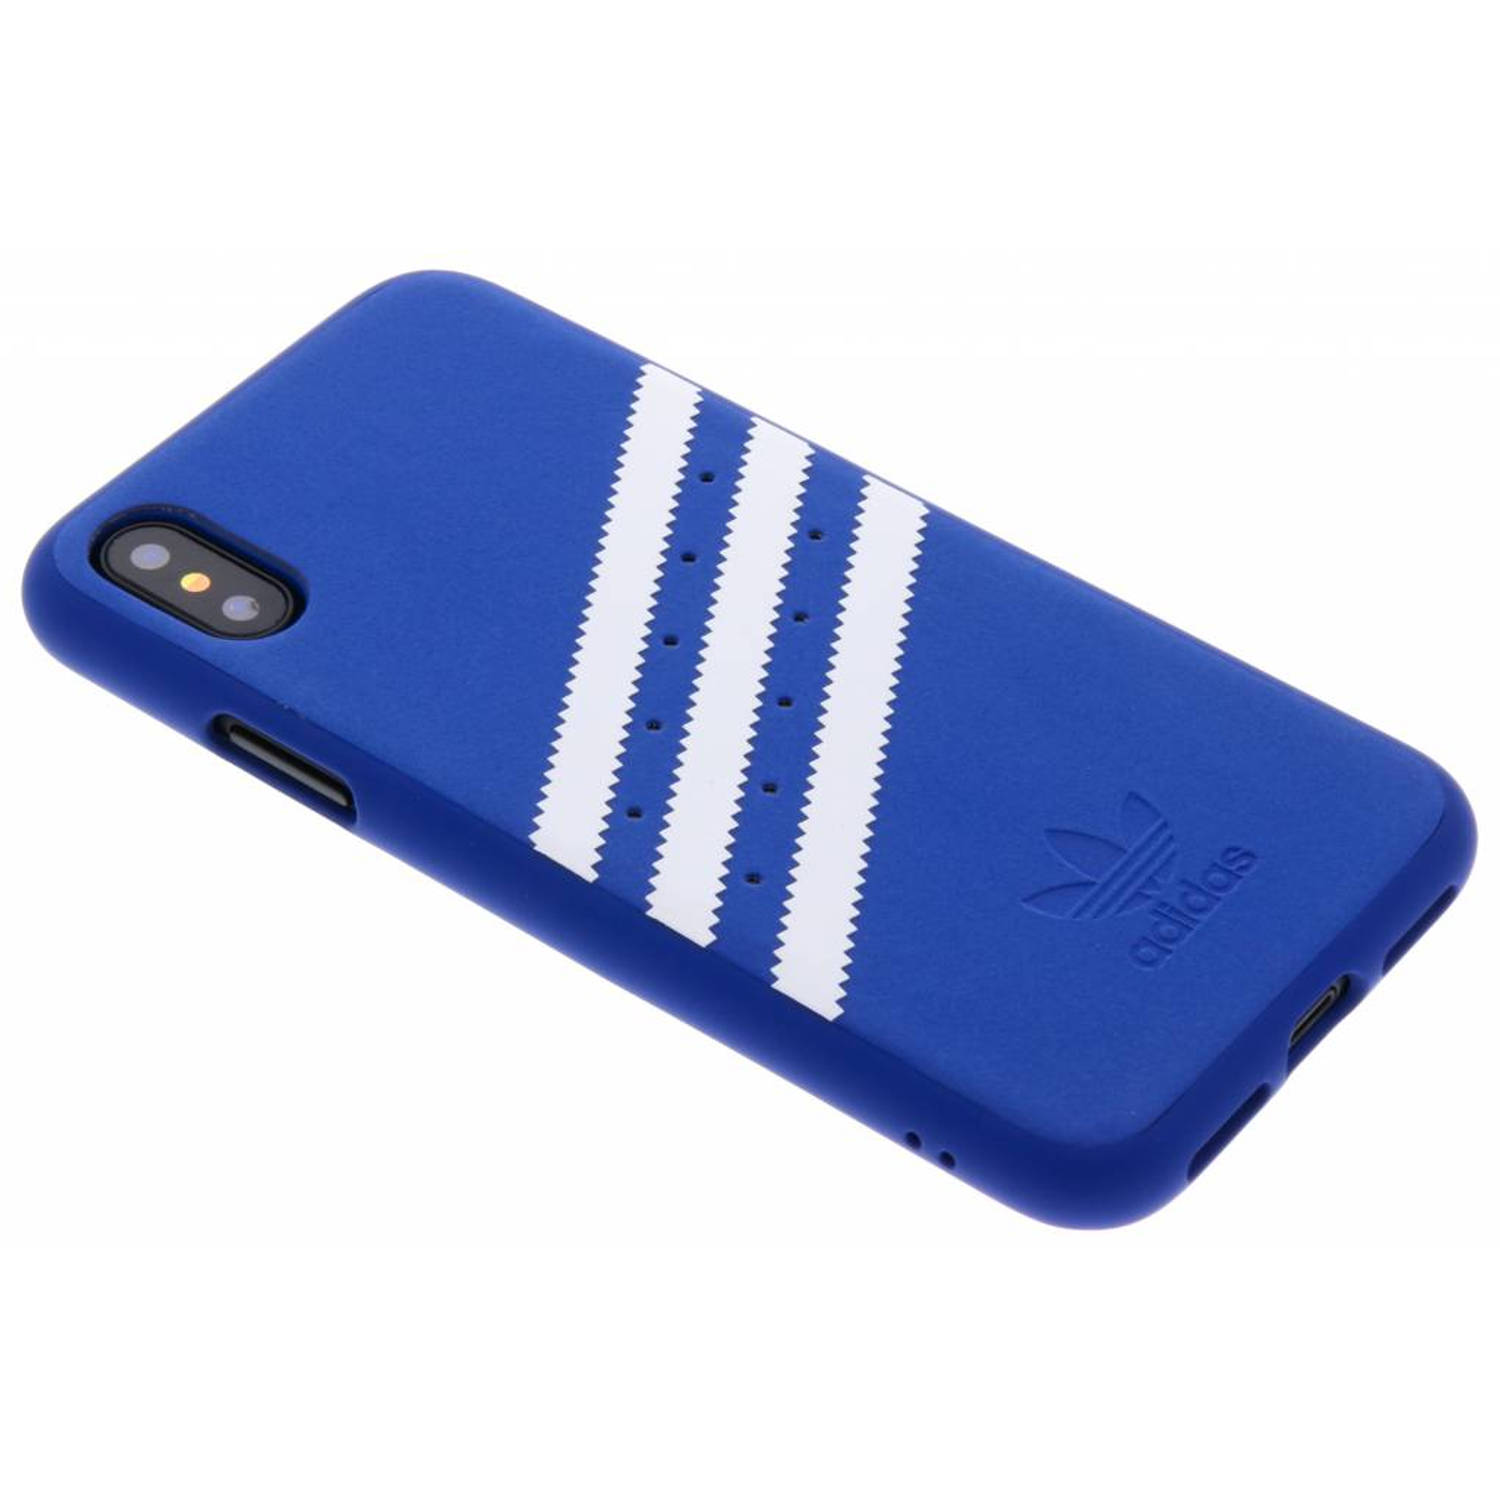 Blauwe Moulded Suede Case voor de iPhone X